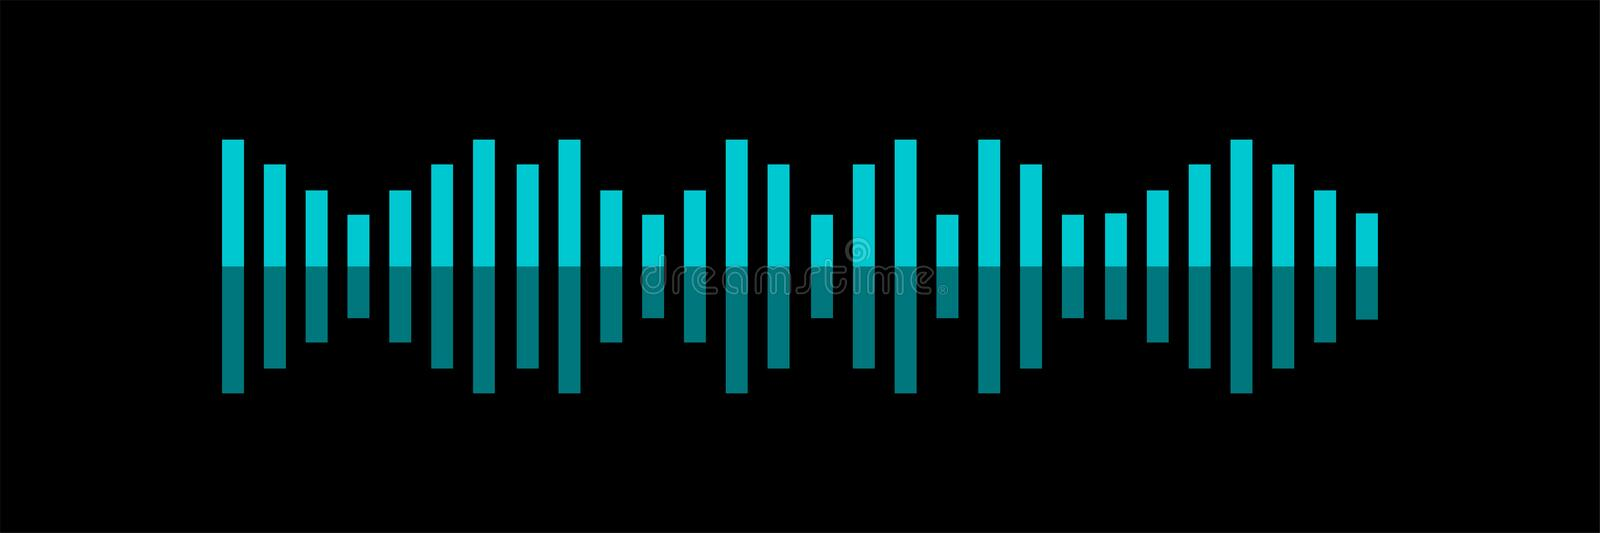 Sound wave. Voice recognition concept flat vector illustration of sound symbol. Bright voice and sound imitation lines royalty free illustration